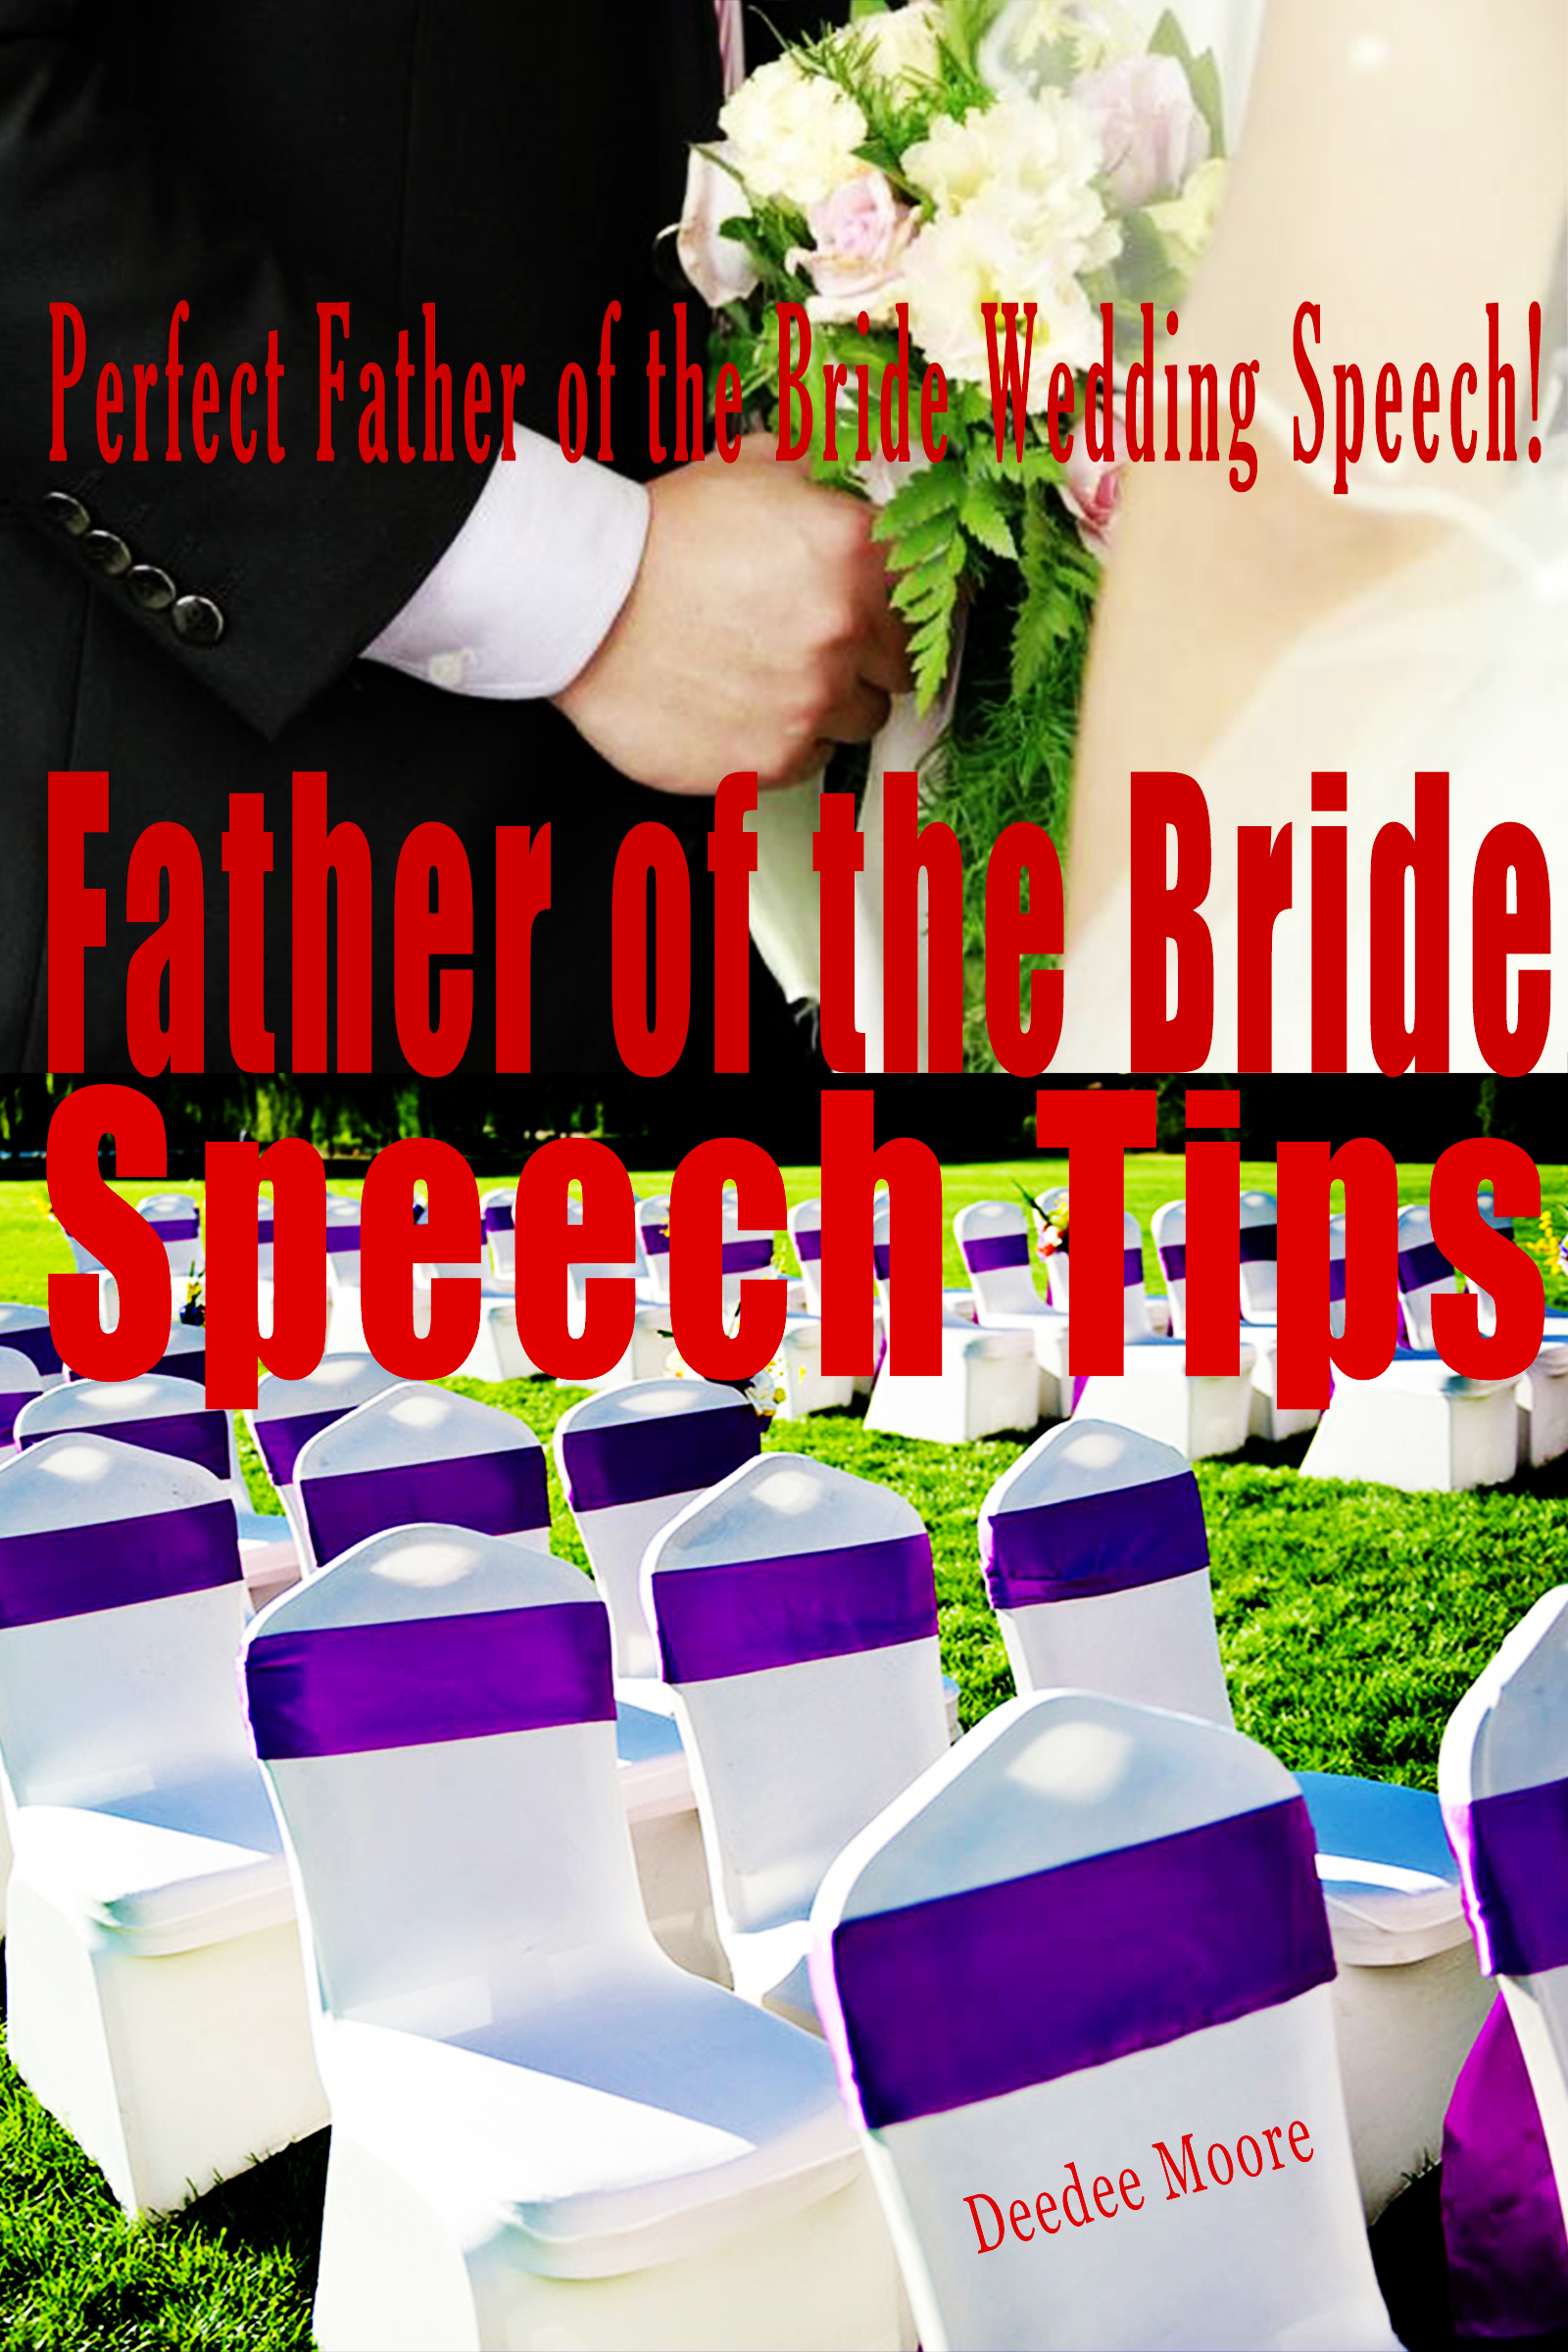 Father of the Bride Speech Tips: Perfect Father of the Bride Wedding Speech!